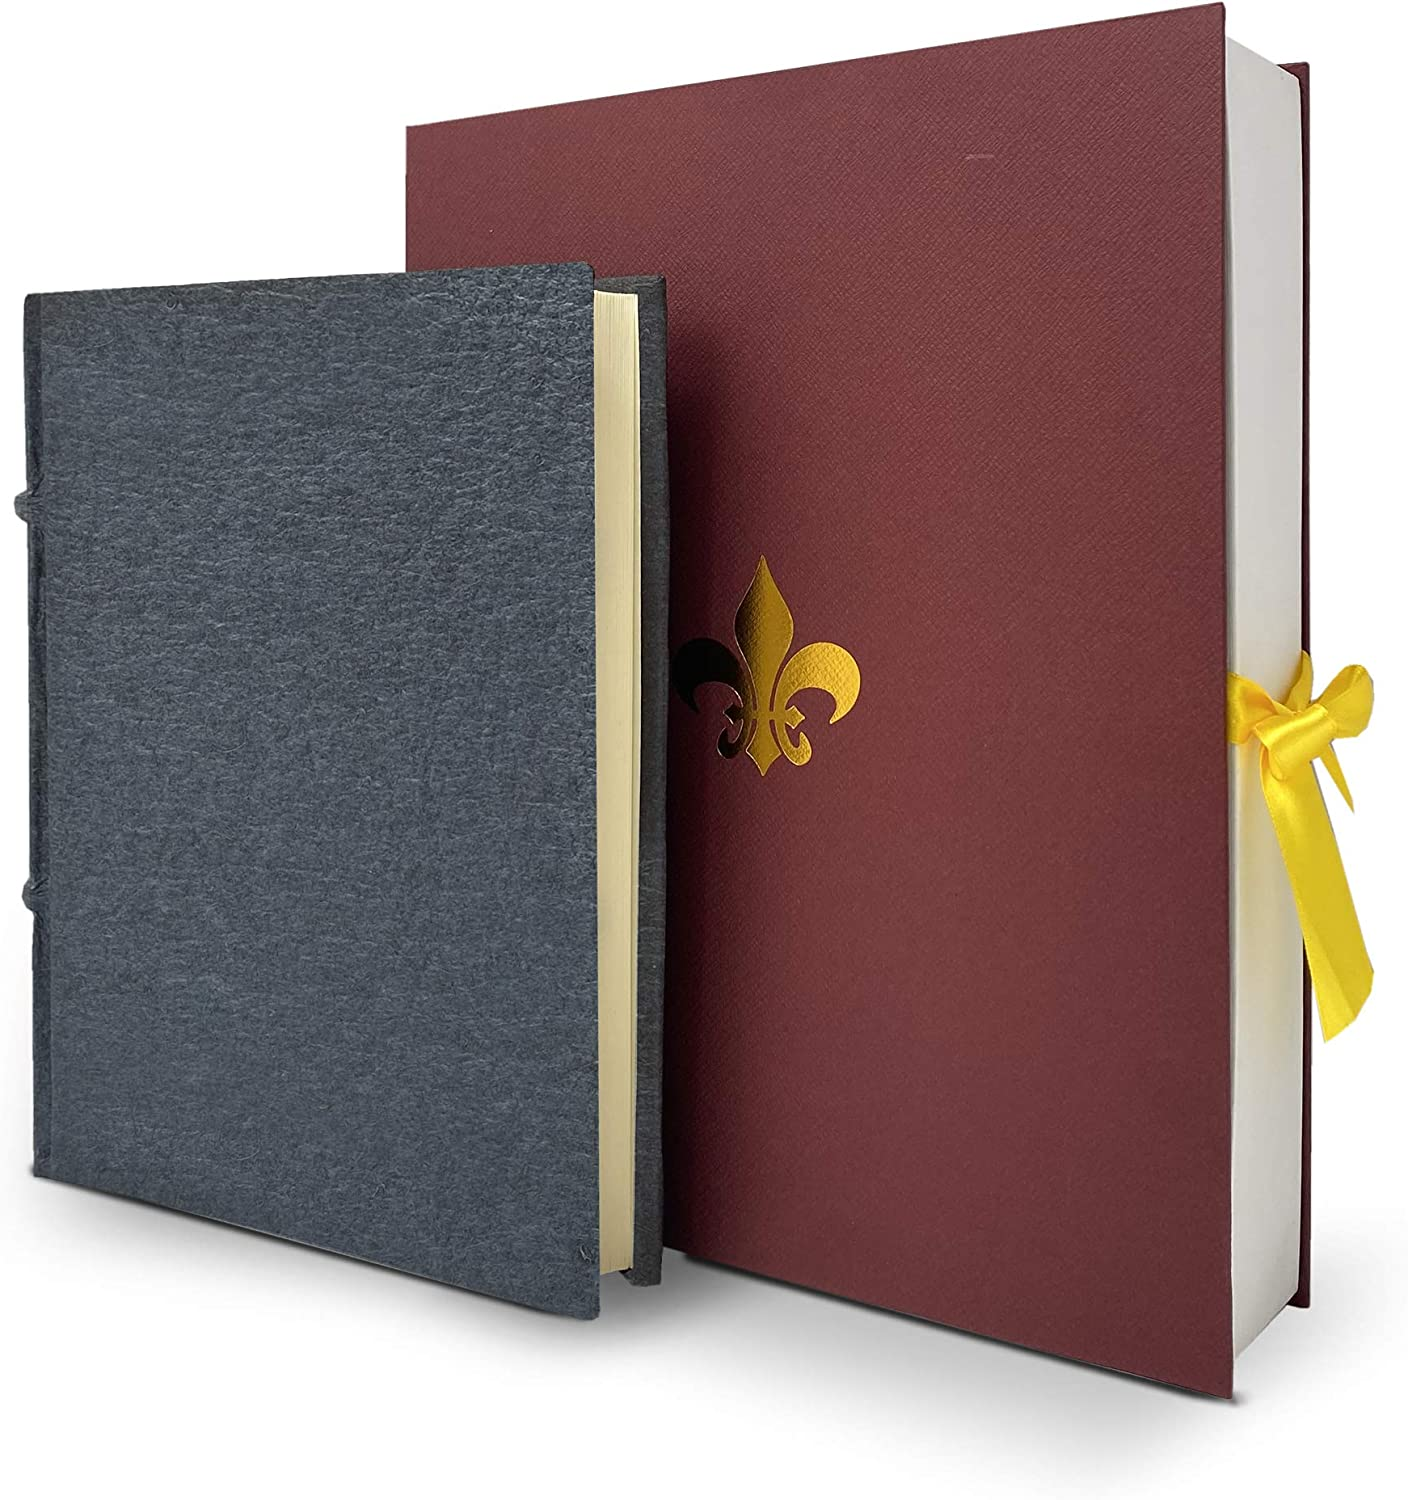 Amazon Com Epica Handmade Italian Photo Album 10x12 Vegan Friendly Holds 100 Pictures Acid Free Pages Archival Quality For Wedding Photographs Family Photos Scrapbooking With Clear Page Separators Home Kitchen